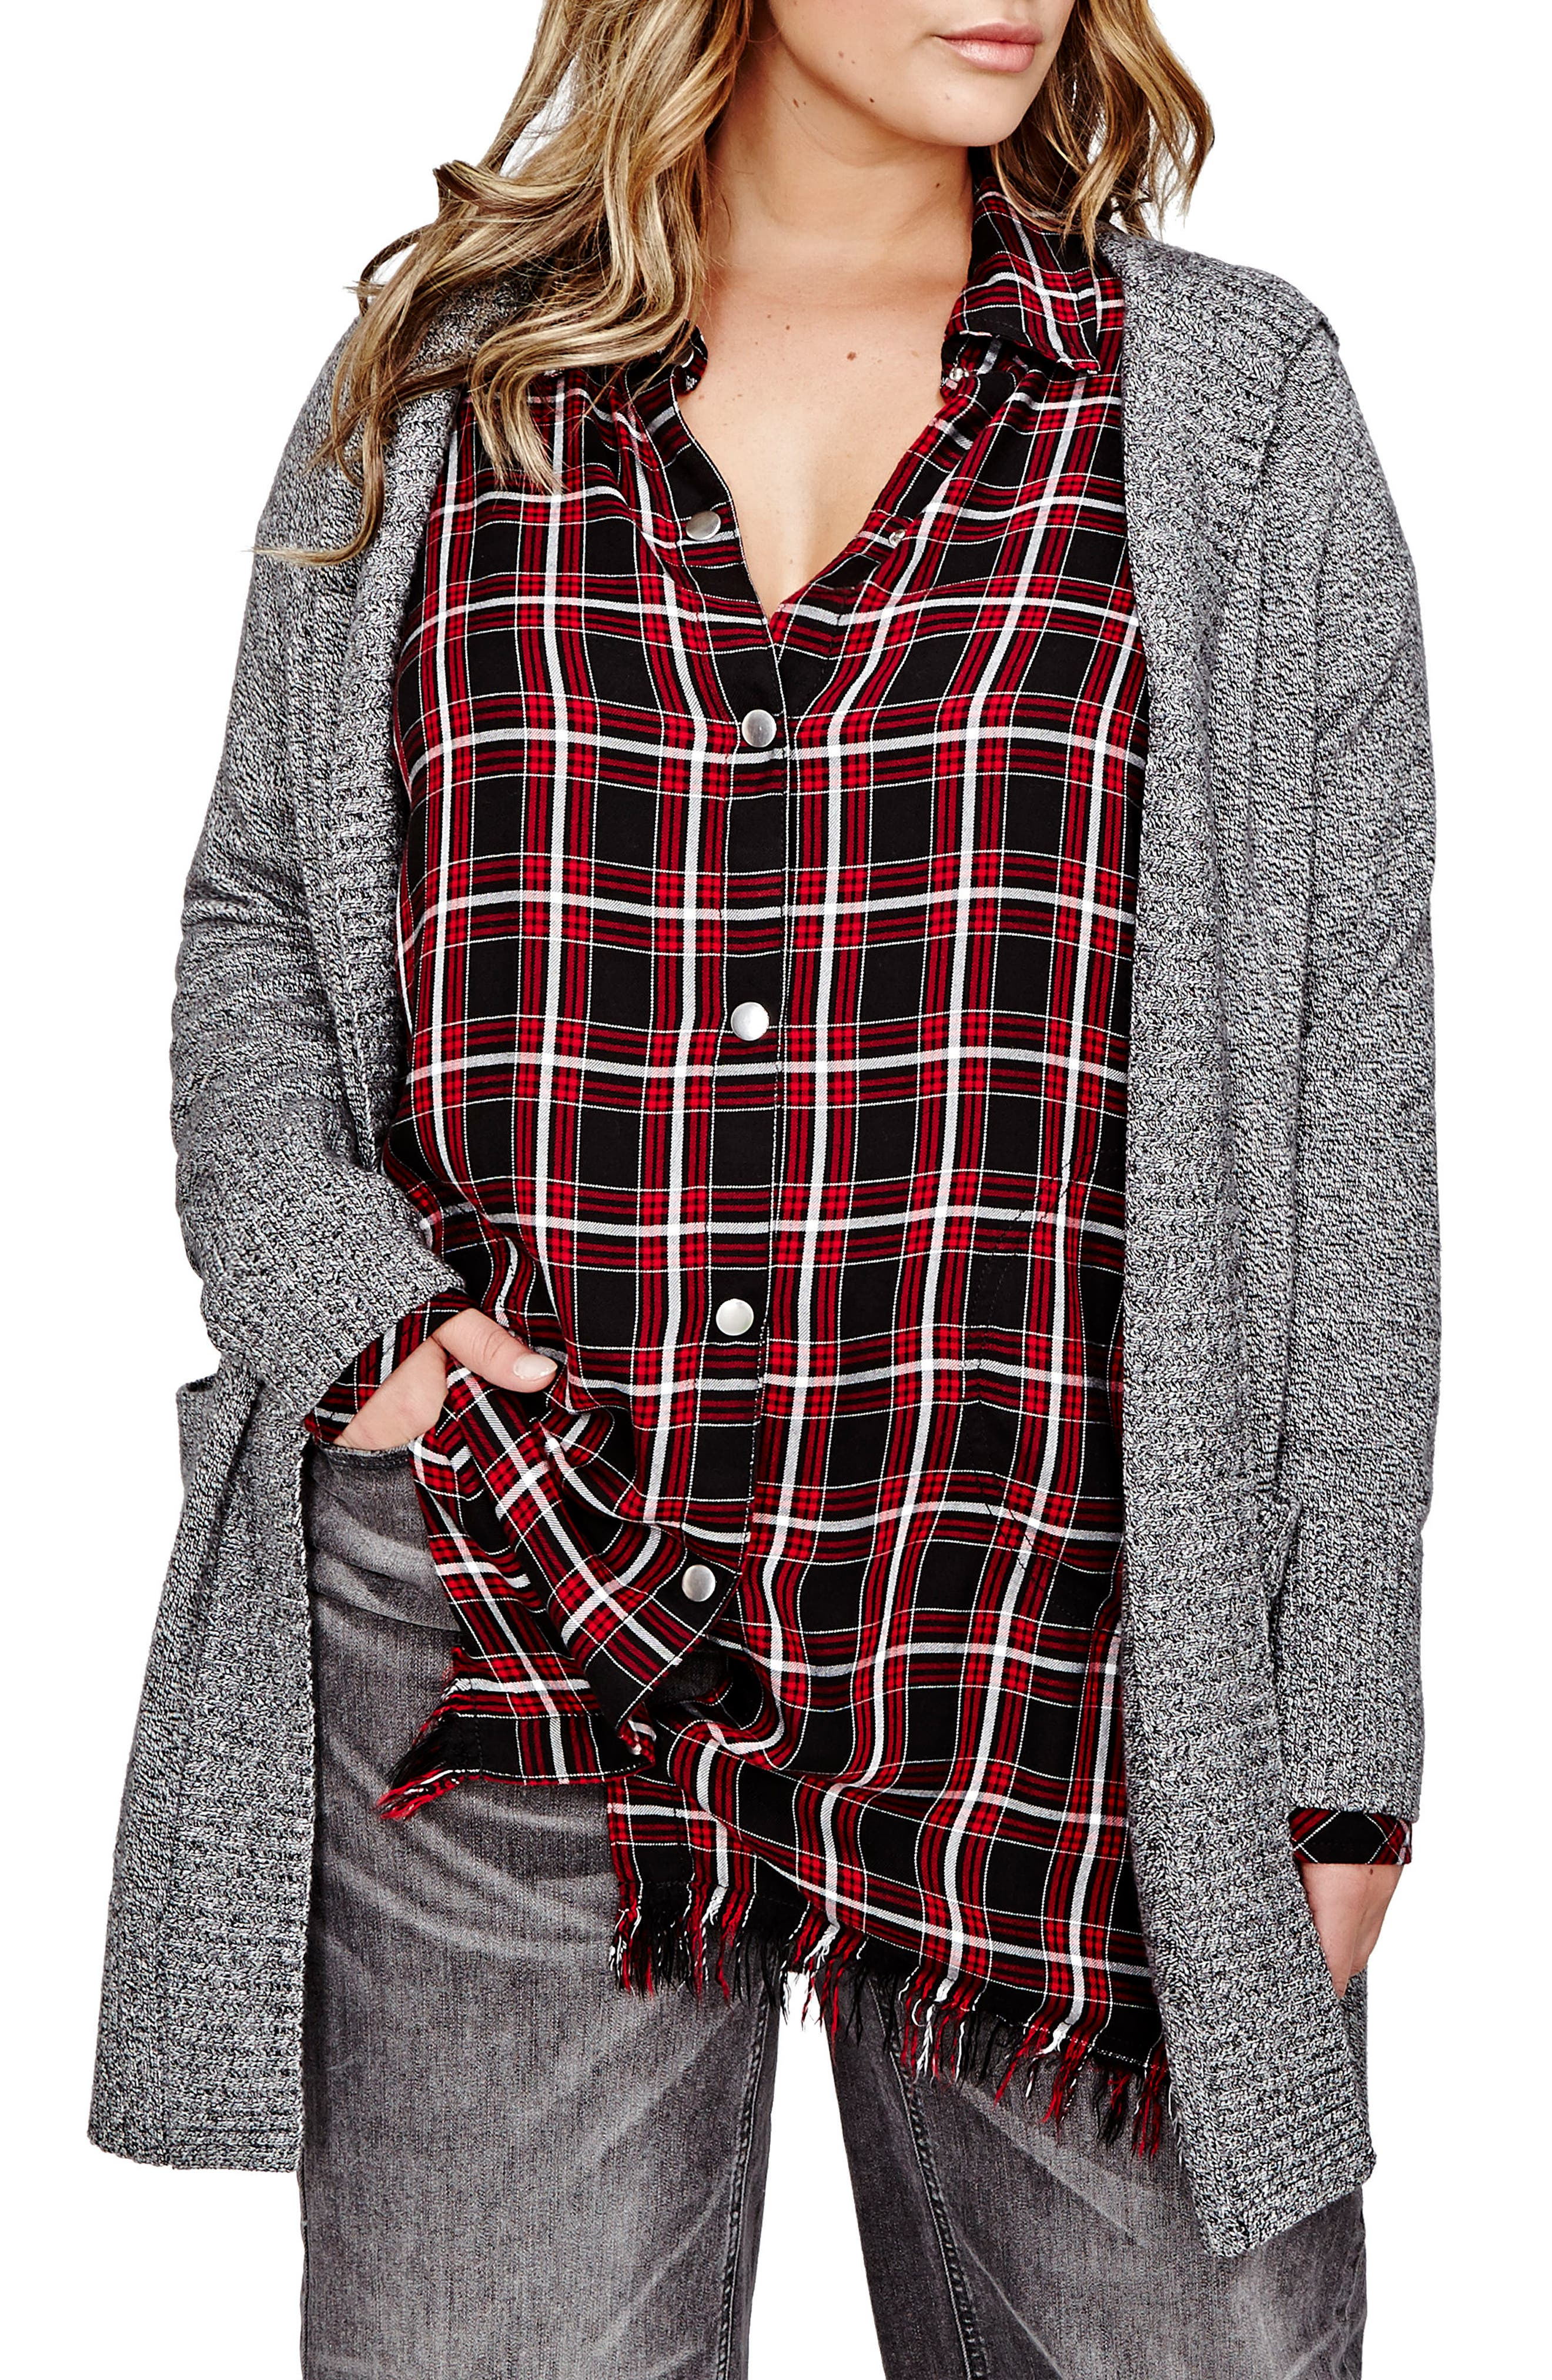 ADDITION ELLE LOVE AND LEGEND Hooded Open Cardigan (Plus Size)